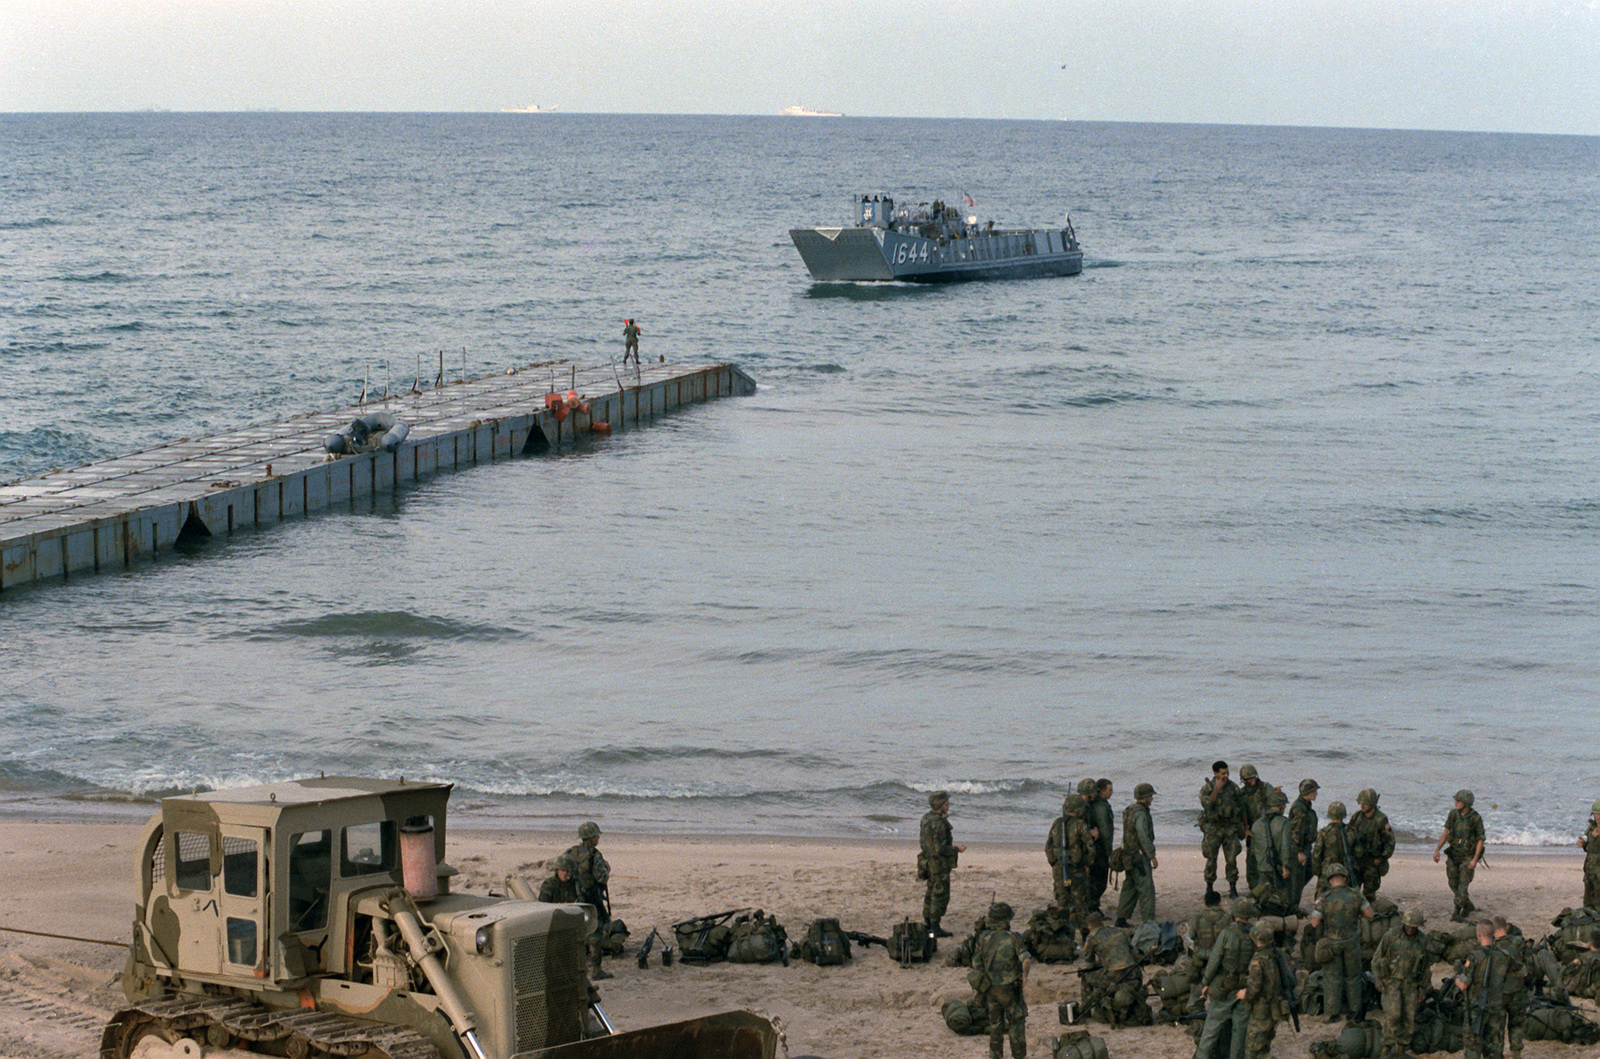 A utility landing craft approaches a causeway as US Marines